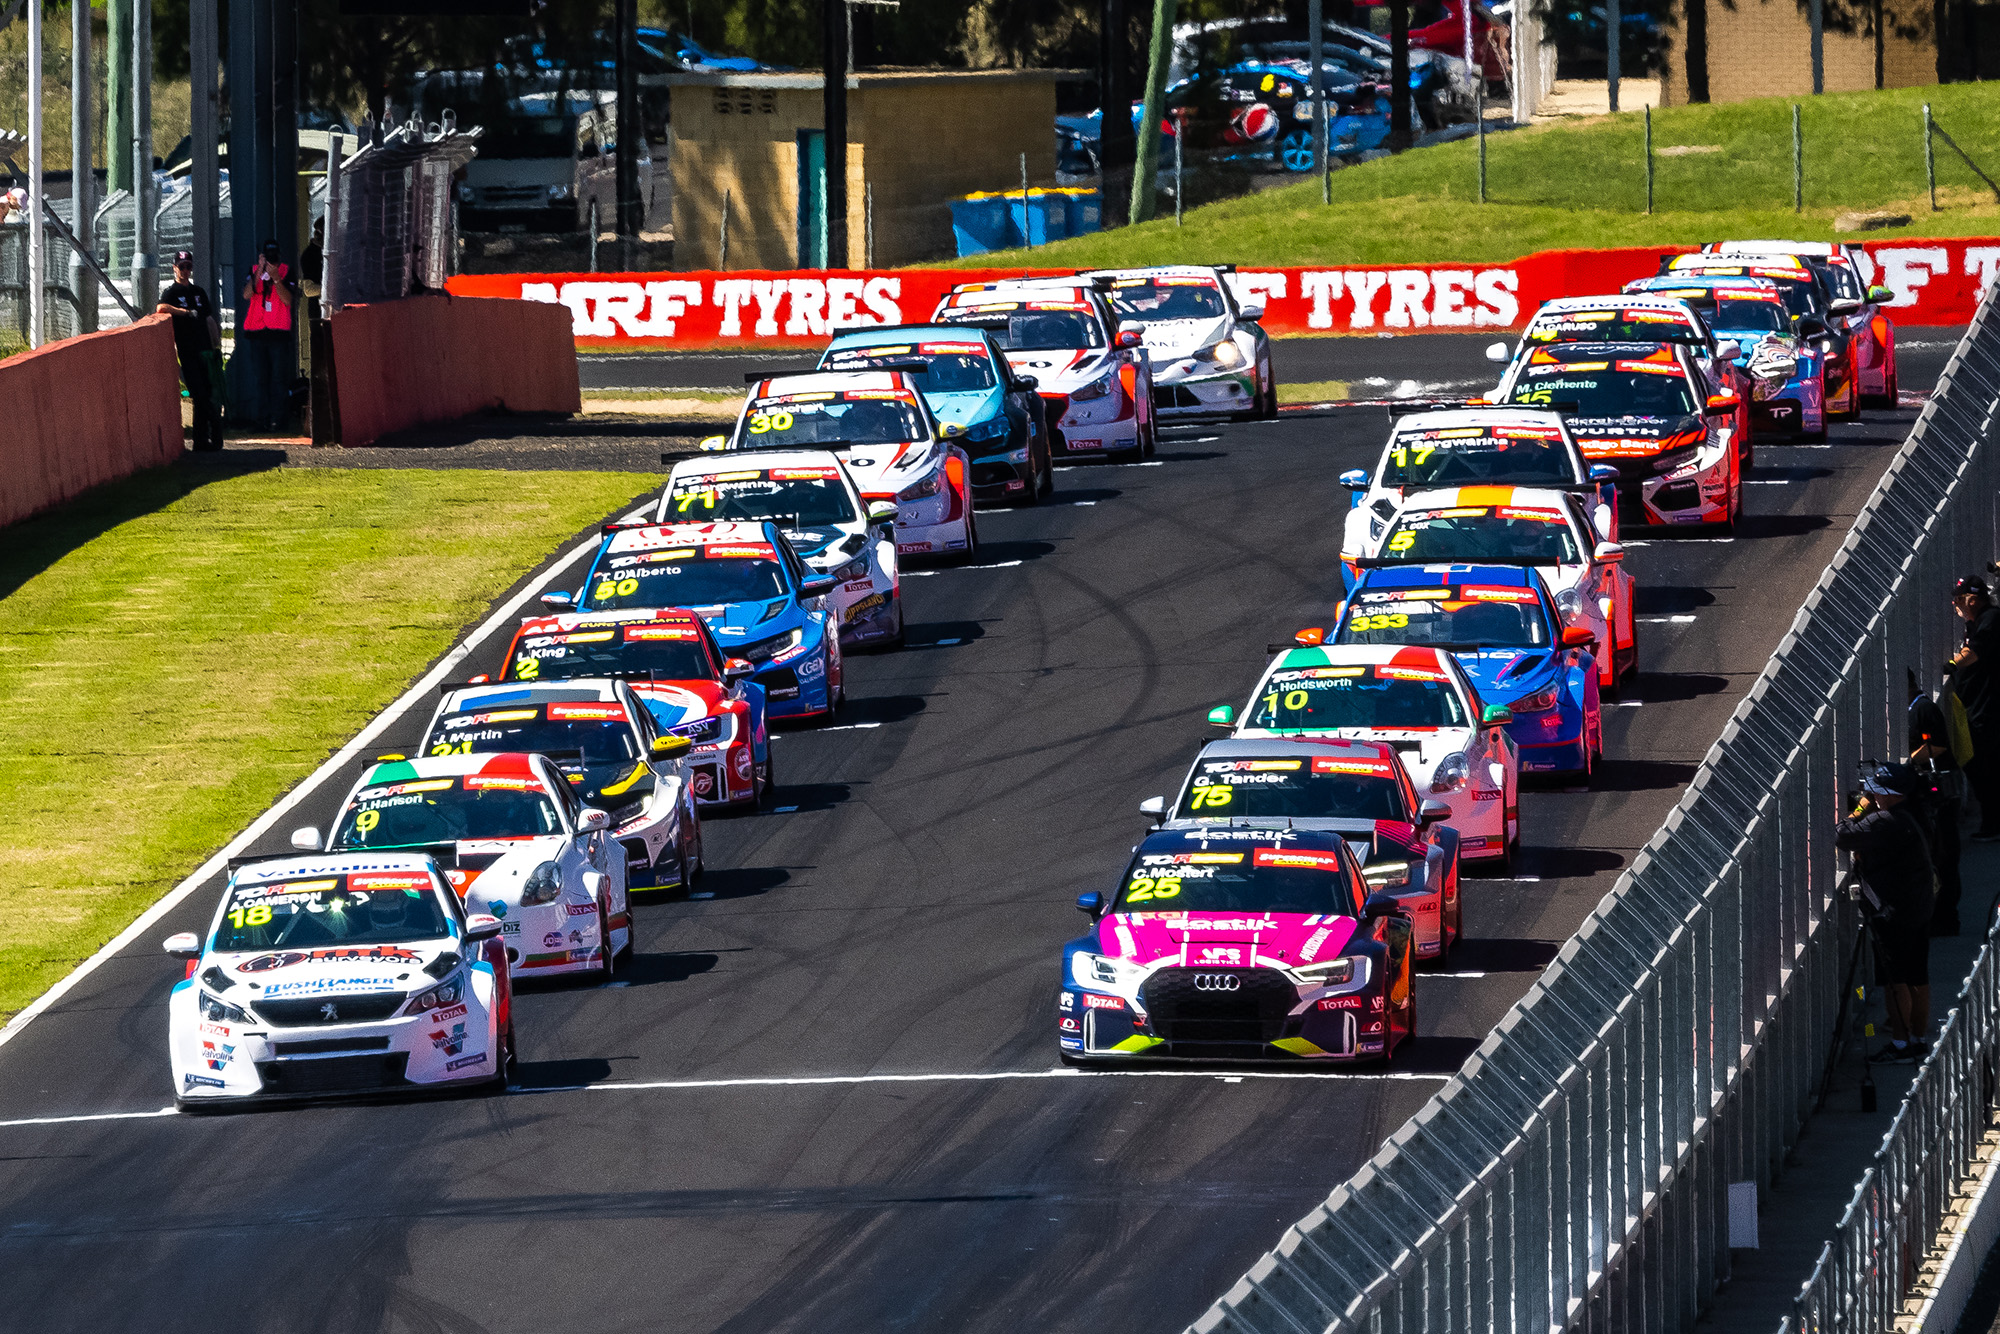 REVIEW & ANALYSIS: The TCR Australia points battle at the half way mark